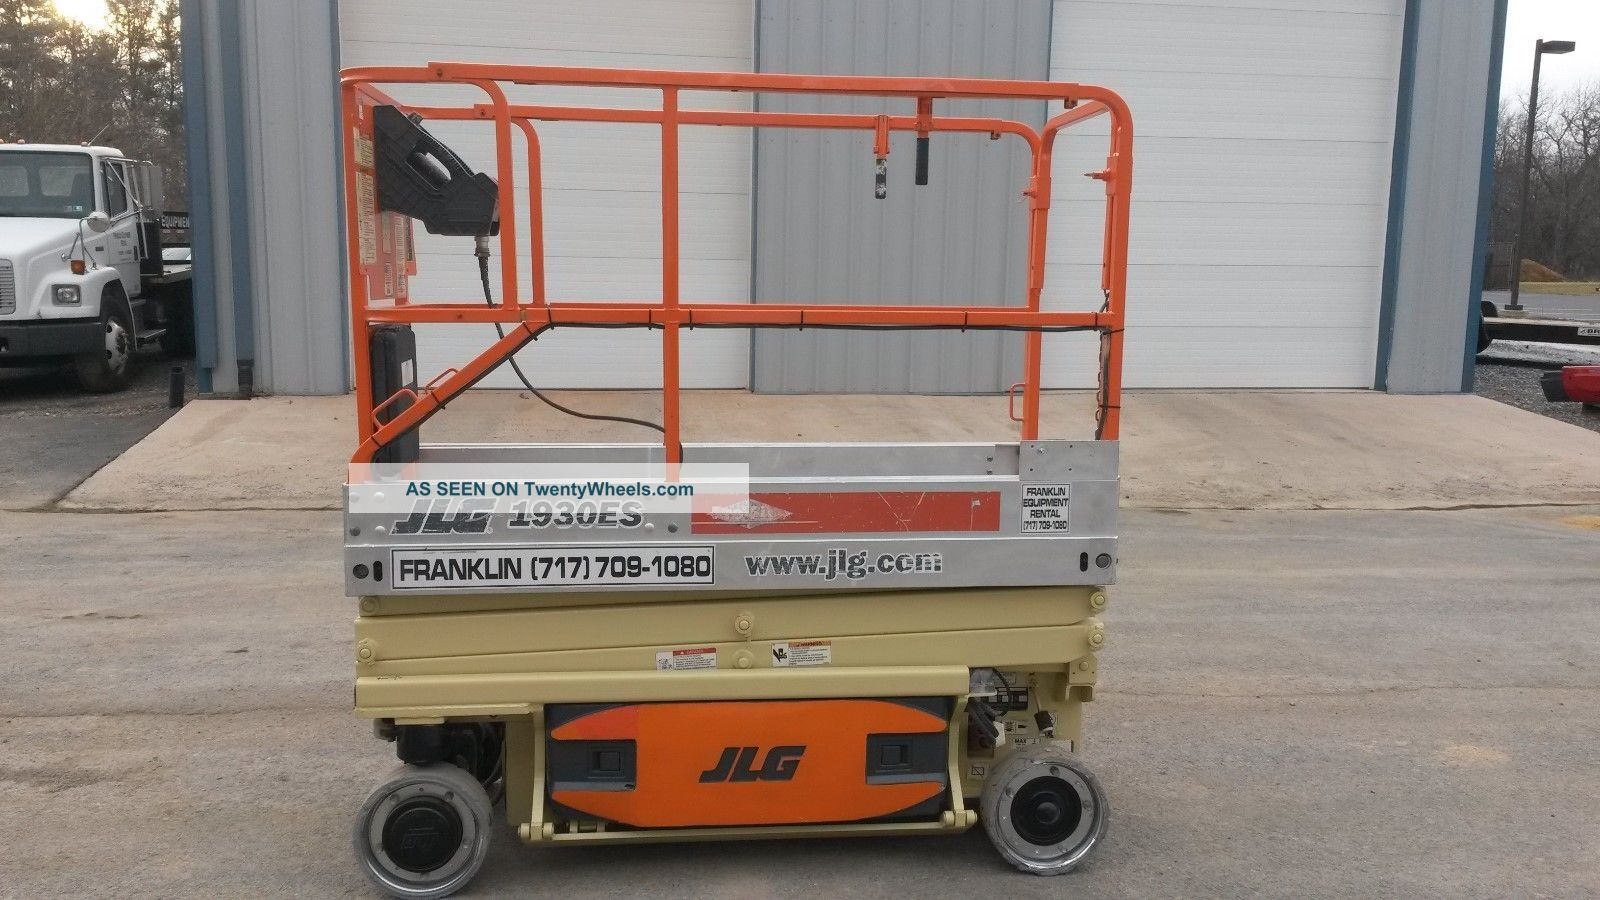 2005 Jlg 1930es Scissor Lift Manlift Boomlift Aerial Lift Platform Lift Jlg Scissor & Boom Lifts photo